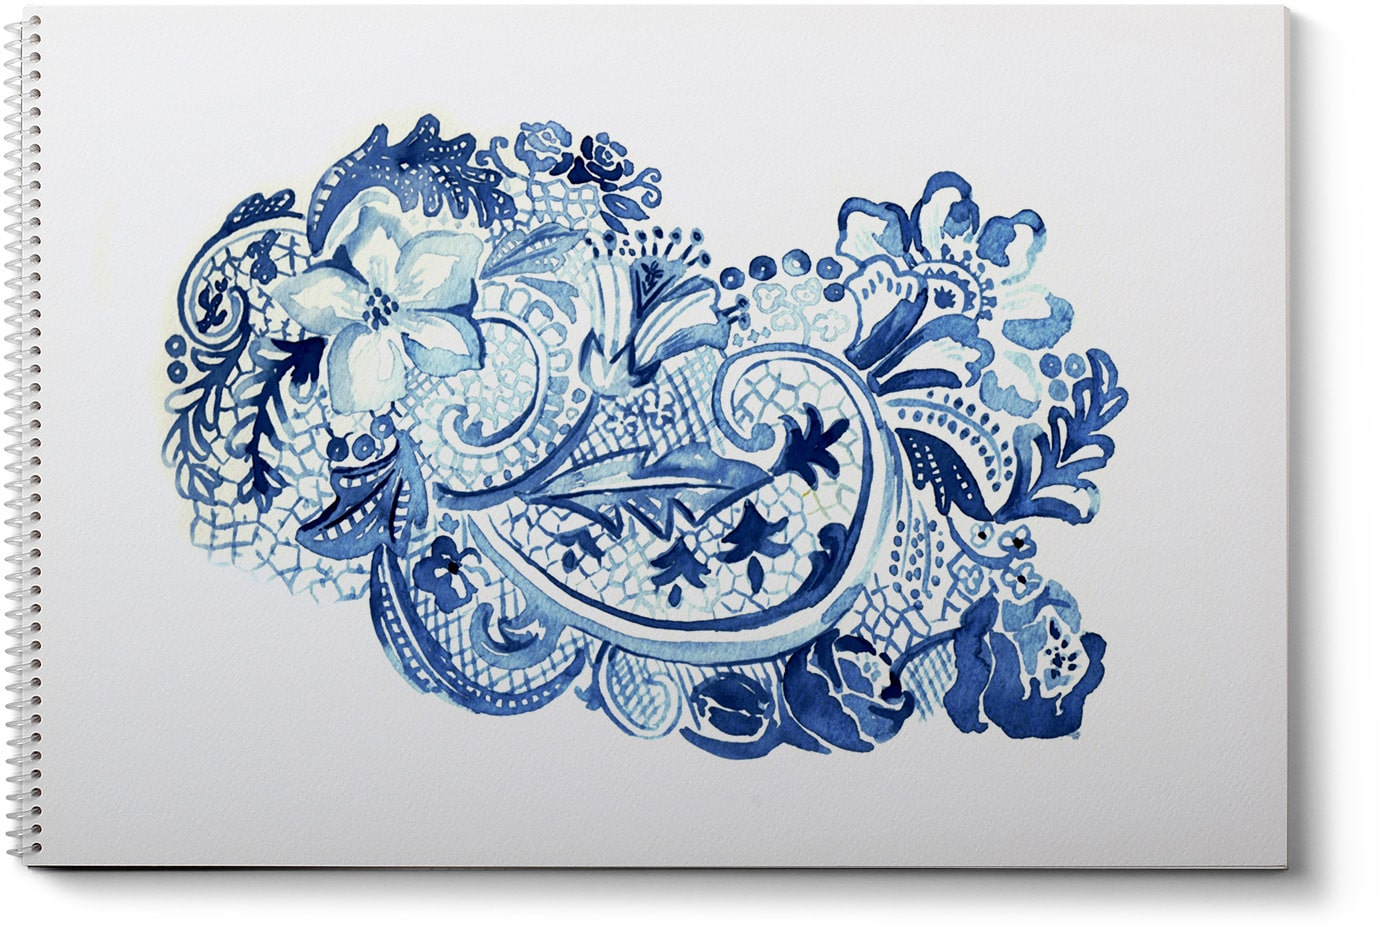 Blue and white watercolor painting